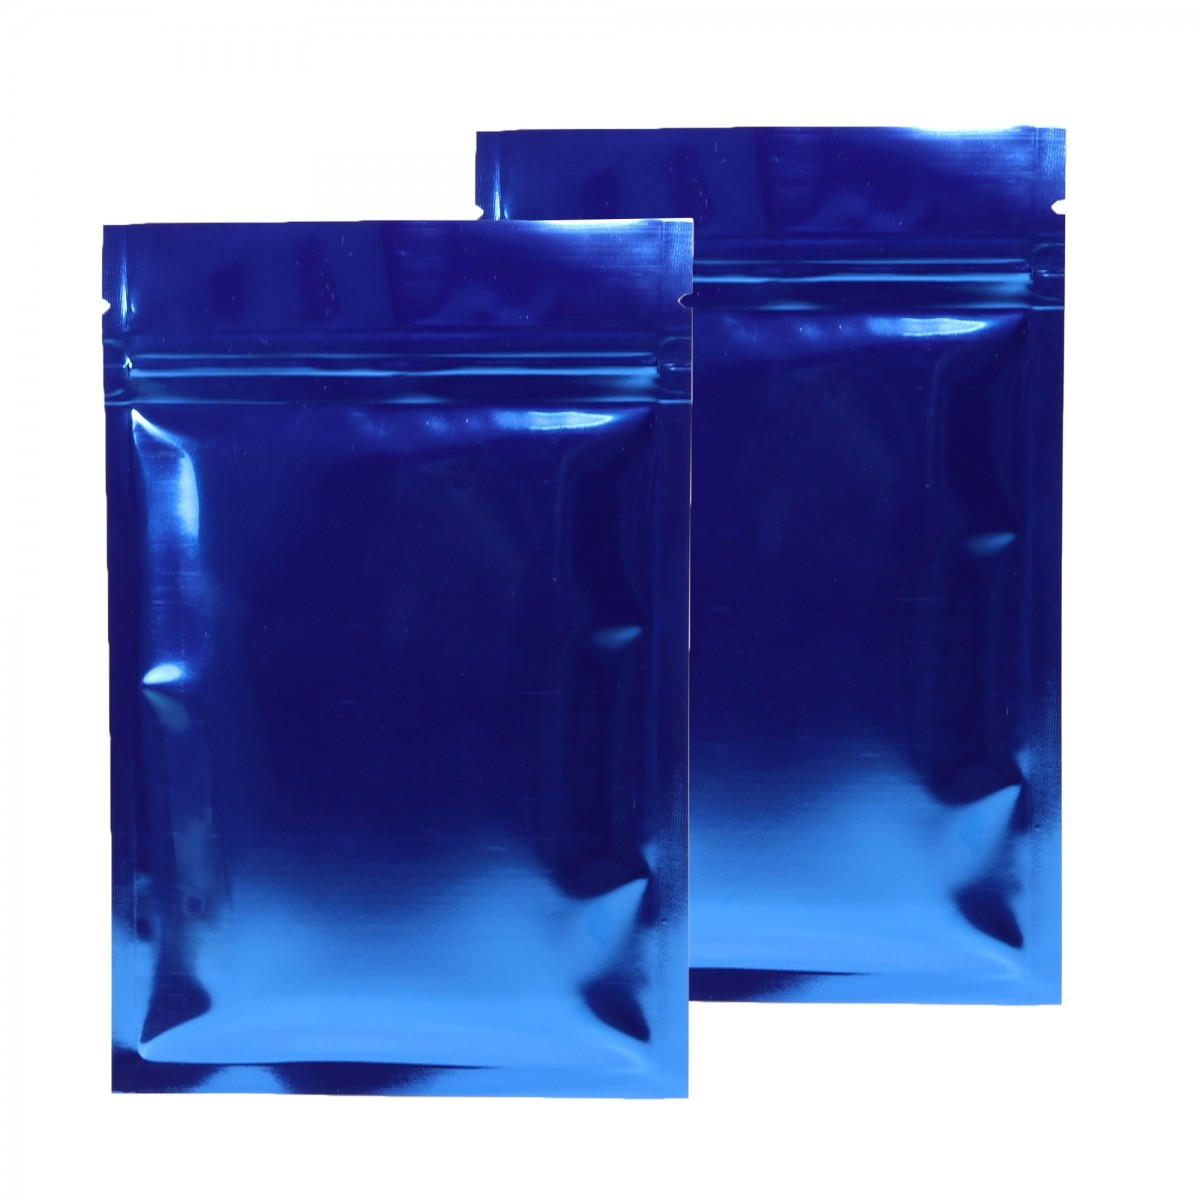 blue shiny metallic mylar ziplock bags 8 5 cm x 13 cm 3 3 inches x 5 1 inches 500 bags lot. Black Bedroom Furniture Sets. Home Design Ideas